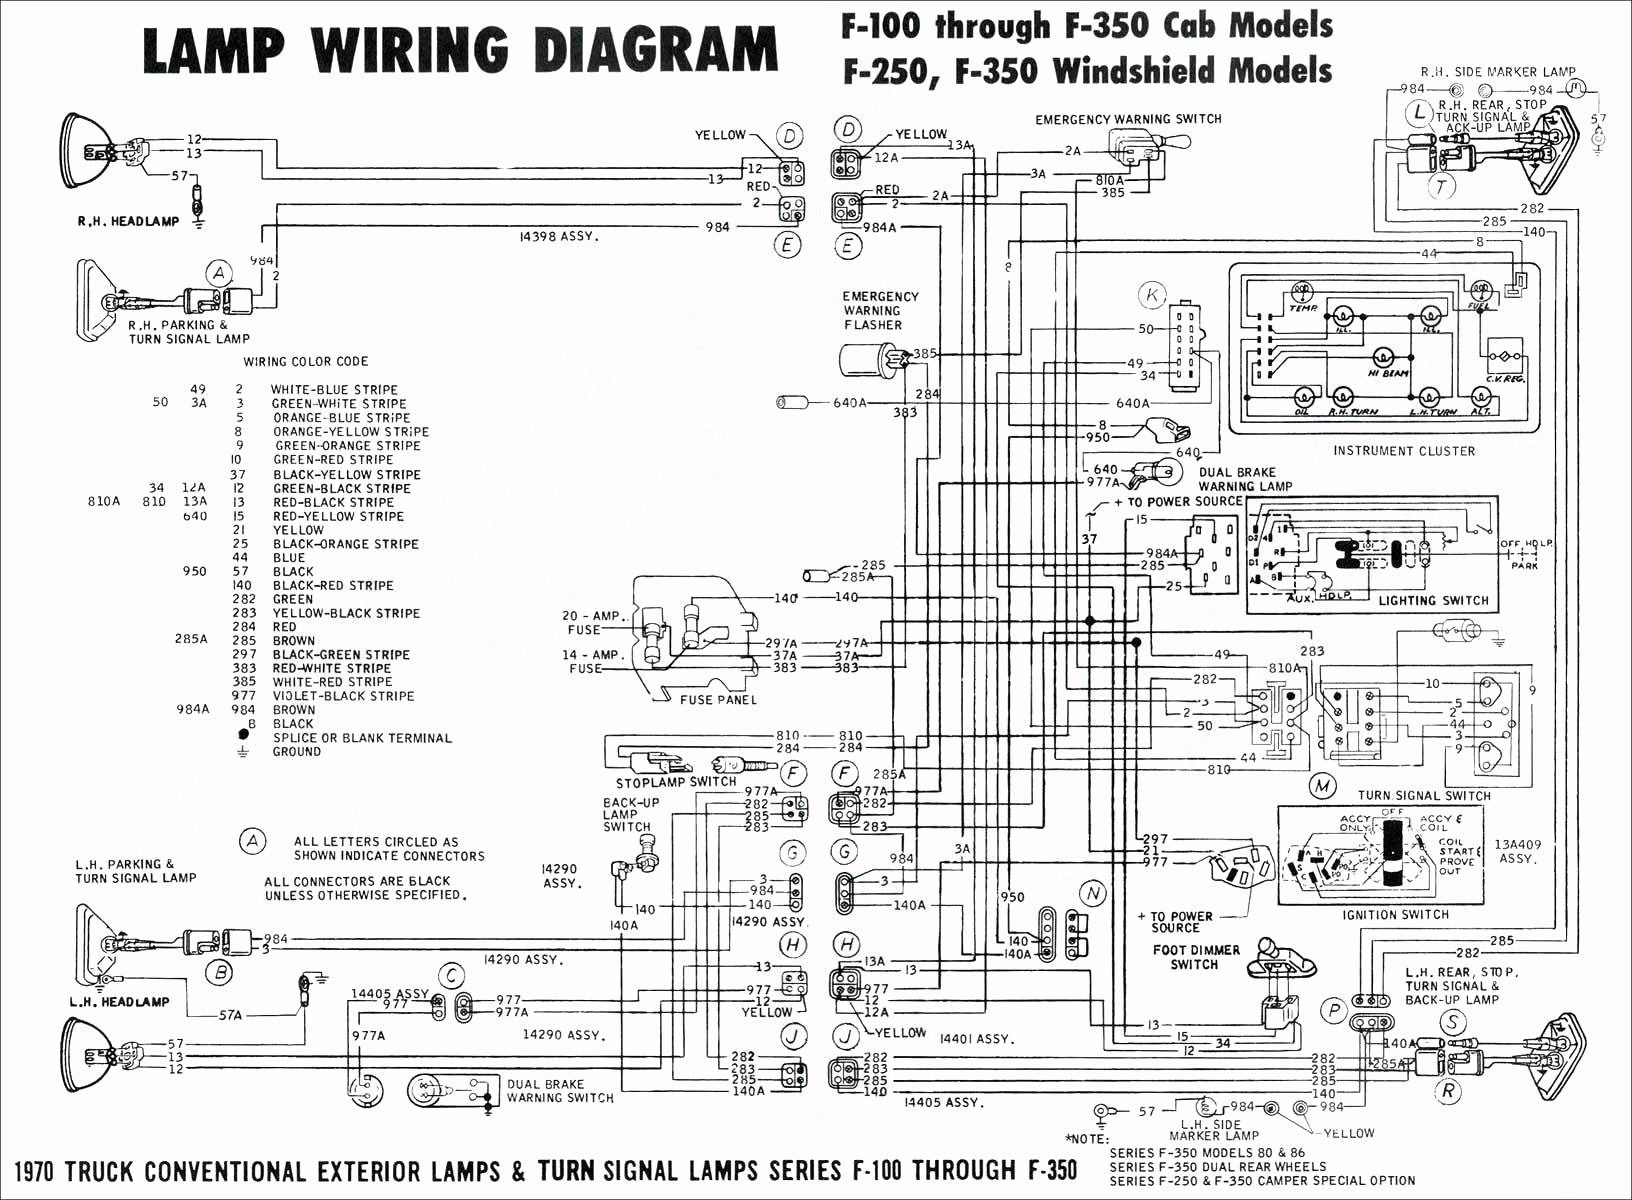 [DIAGRAM] 1950 Chevy Truck Headlight Switch Wiring Diagram